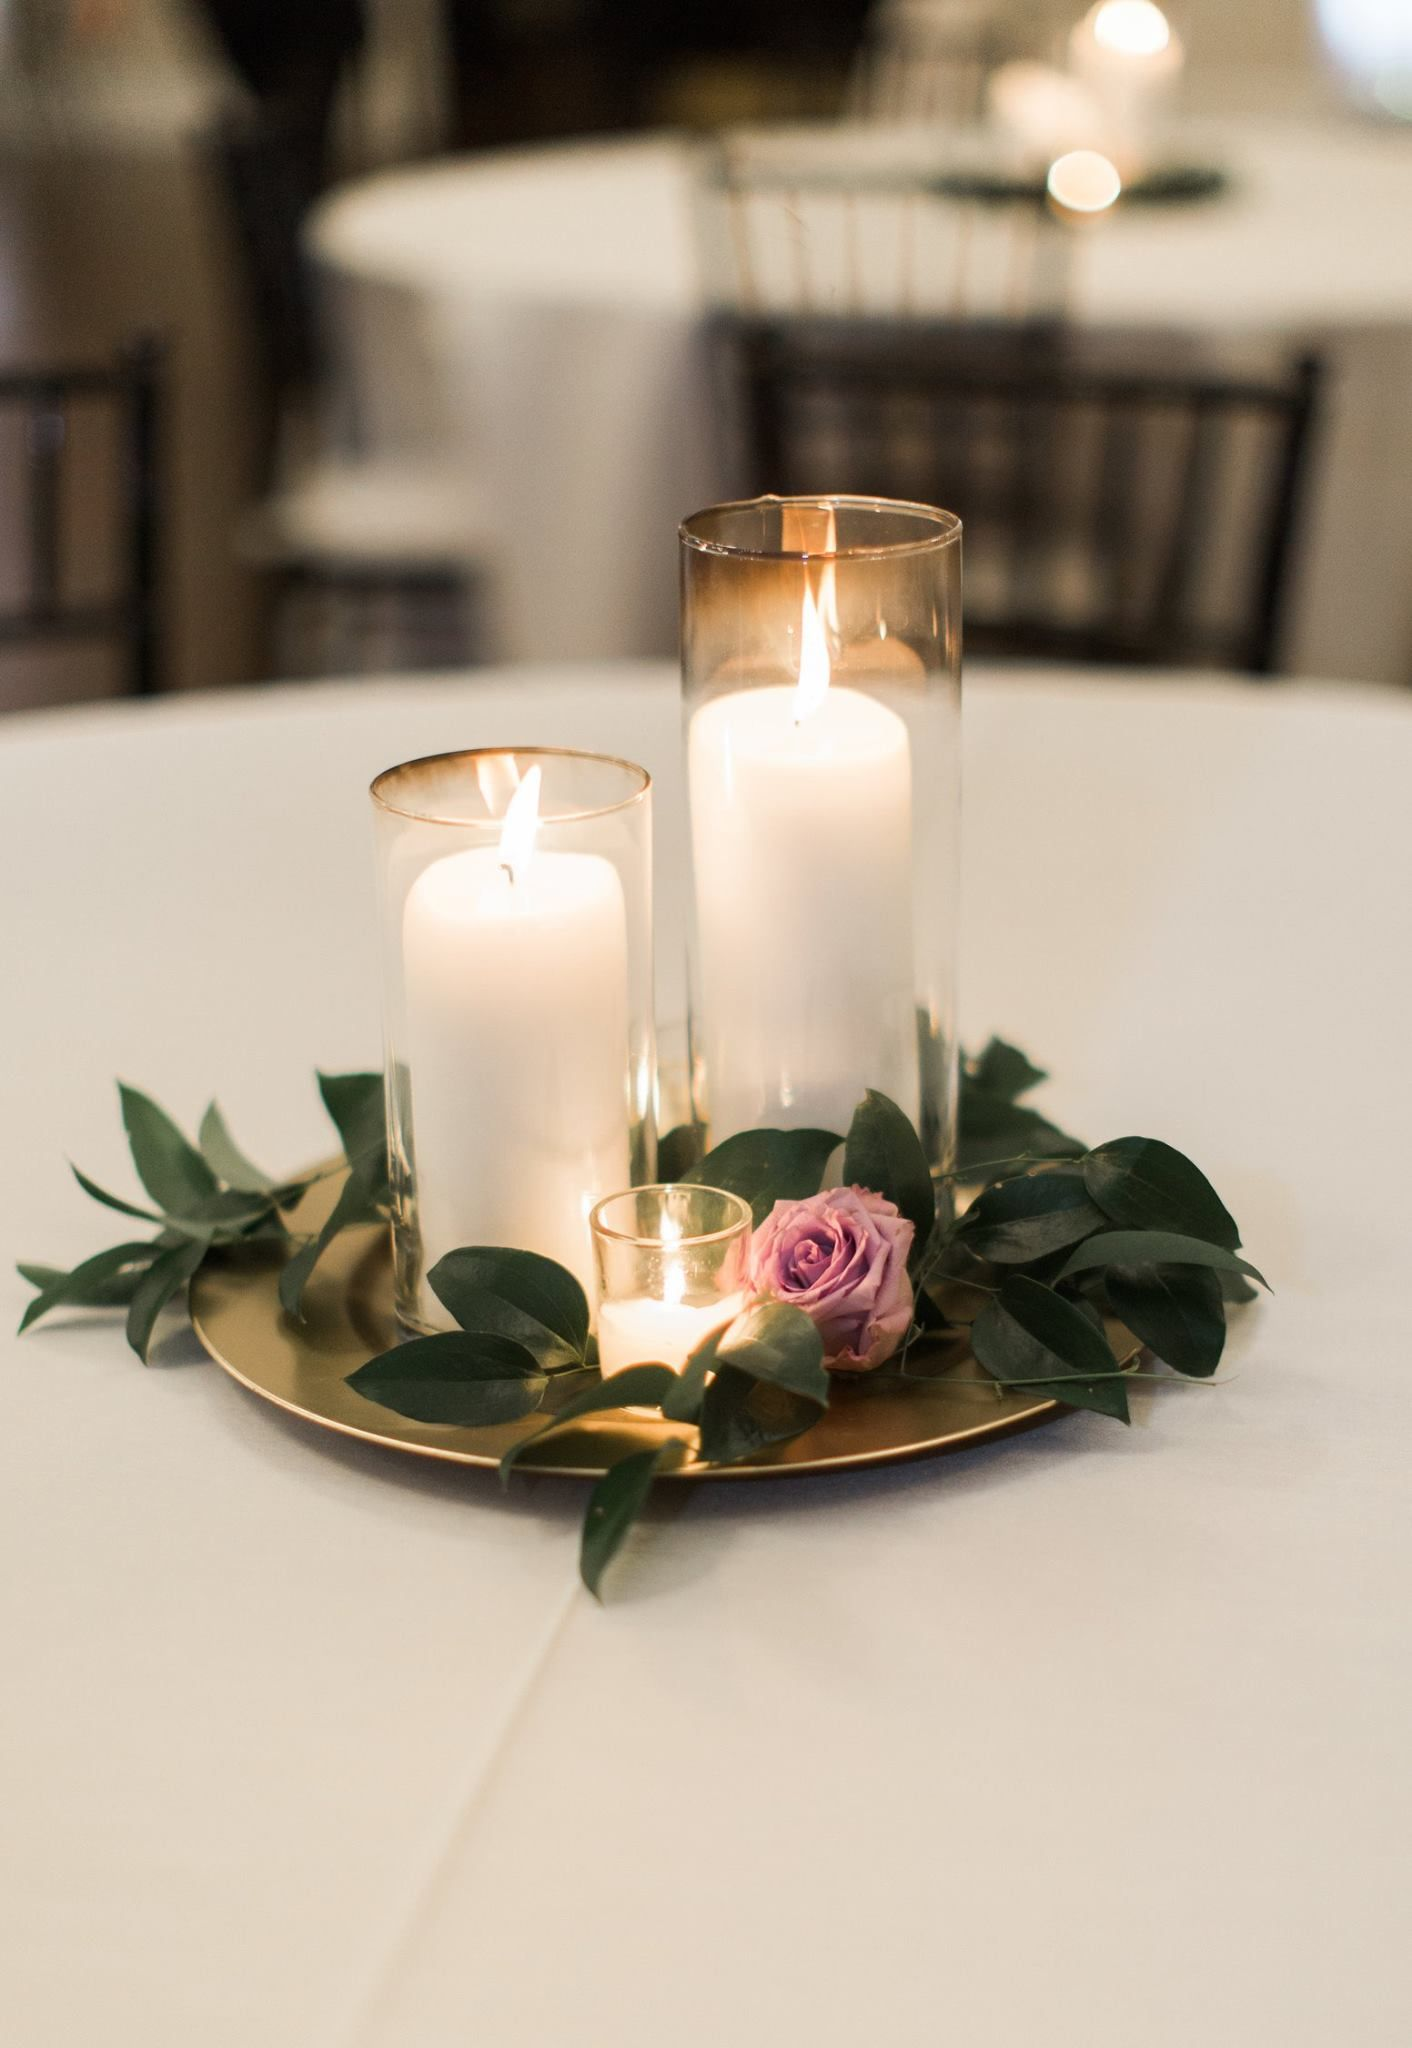 Candle wedding centerpiece purple and greenery centerpiece simple candle wedding centerpiece purple and greenery centerpiece simple wedding centerpiece junglespirit